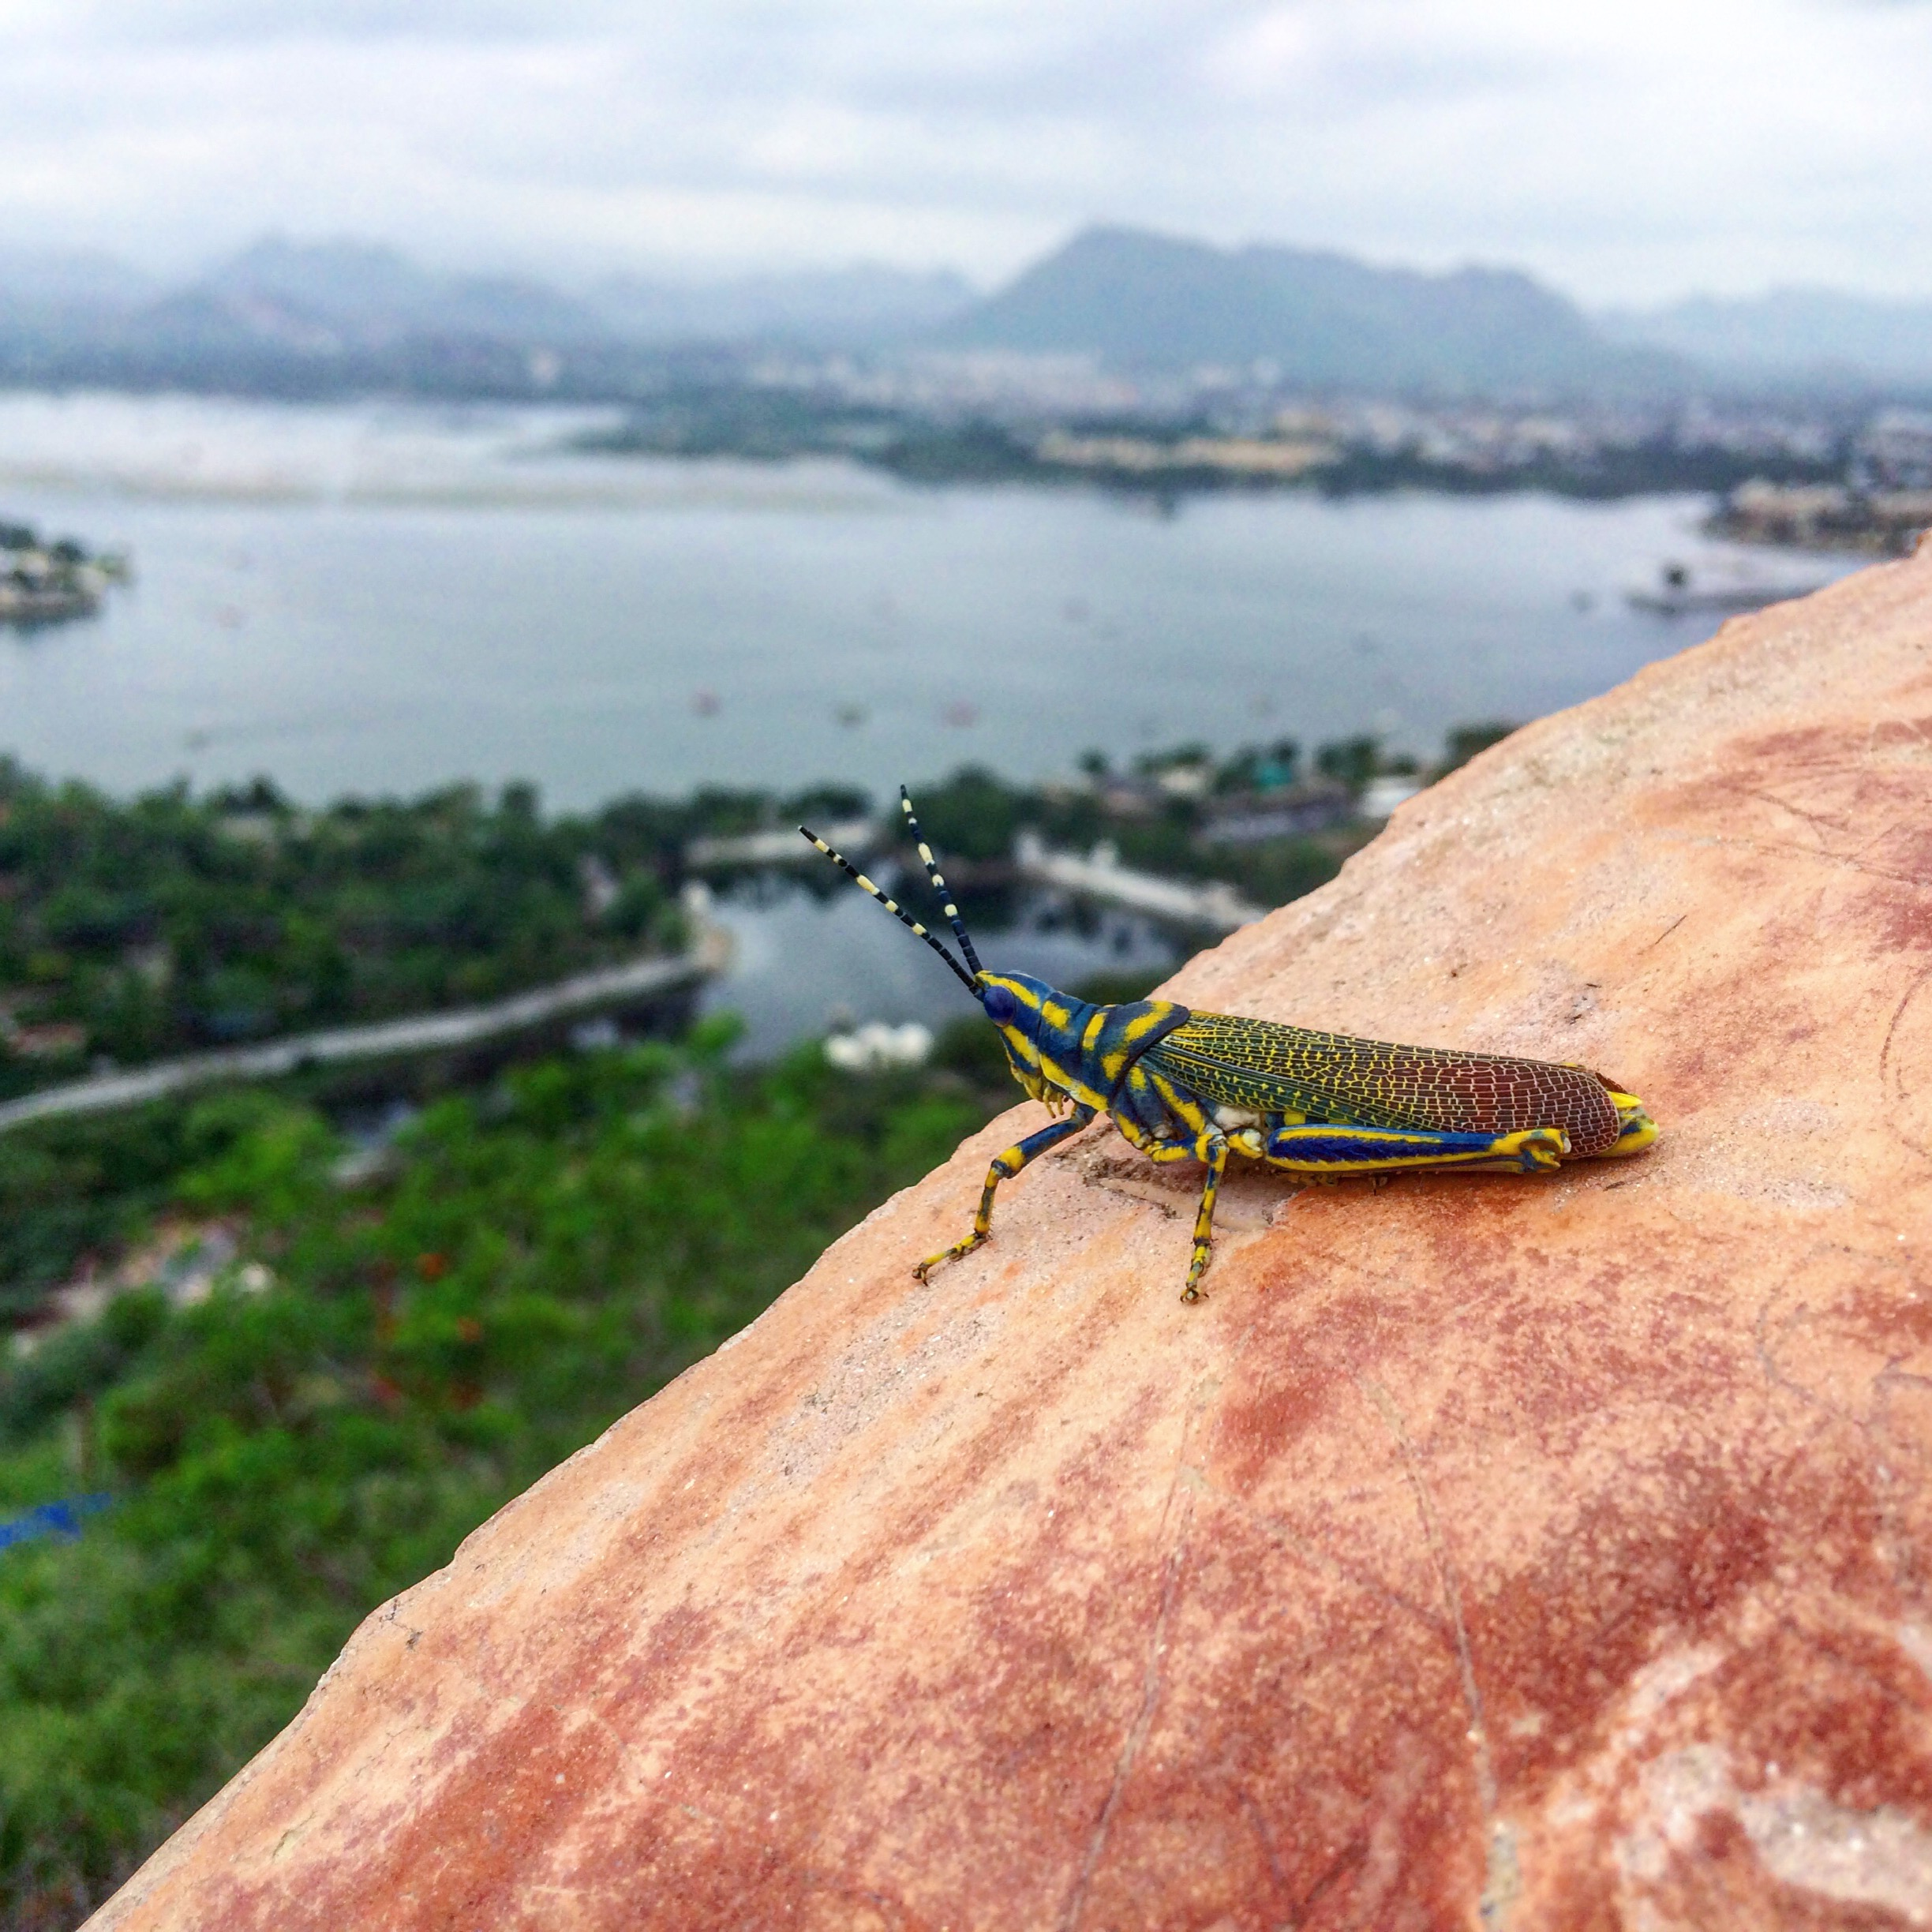 Insect Looking over a City